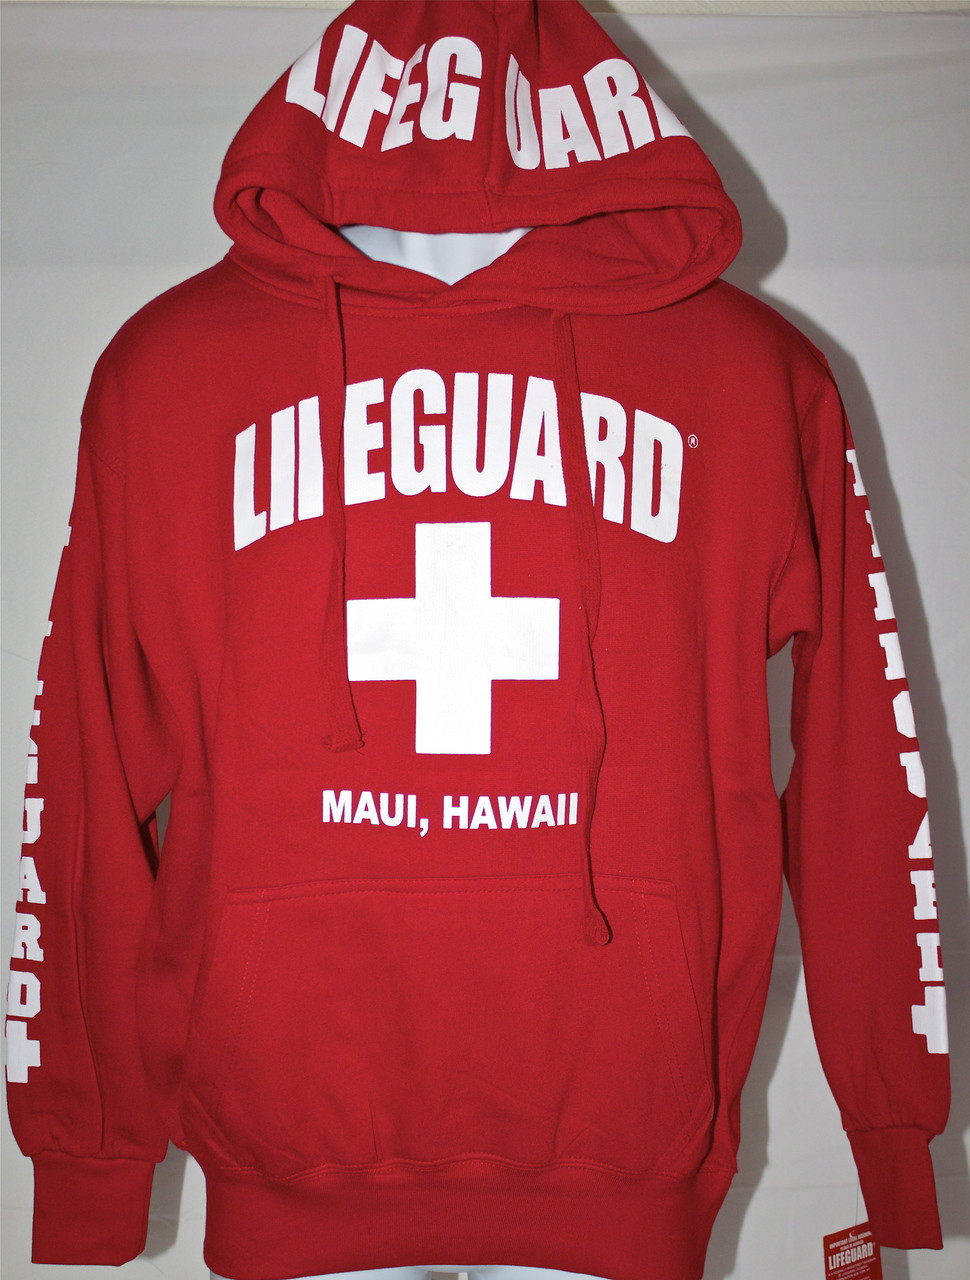 d0e5c3aa846 Lifeguard Hoodie in Red (Unisex Sizing) - (808)661-7828 Maui s Beach ...